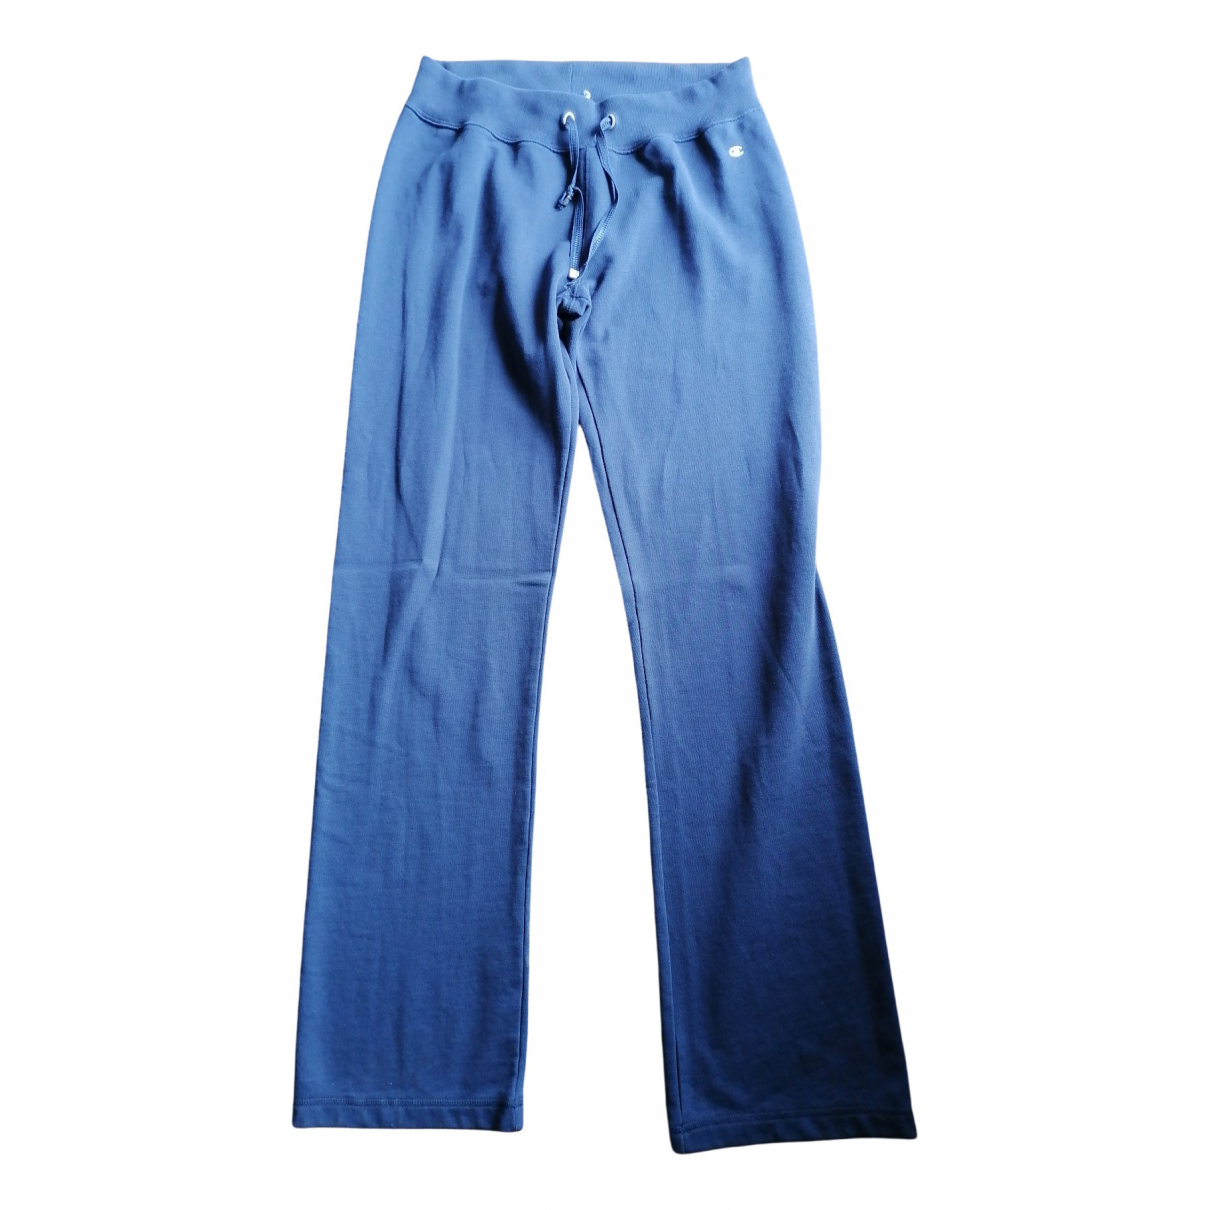 Champion \N Blue Cotton Trousers for Women S International